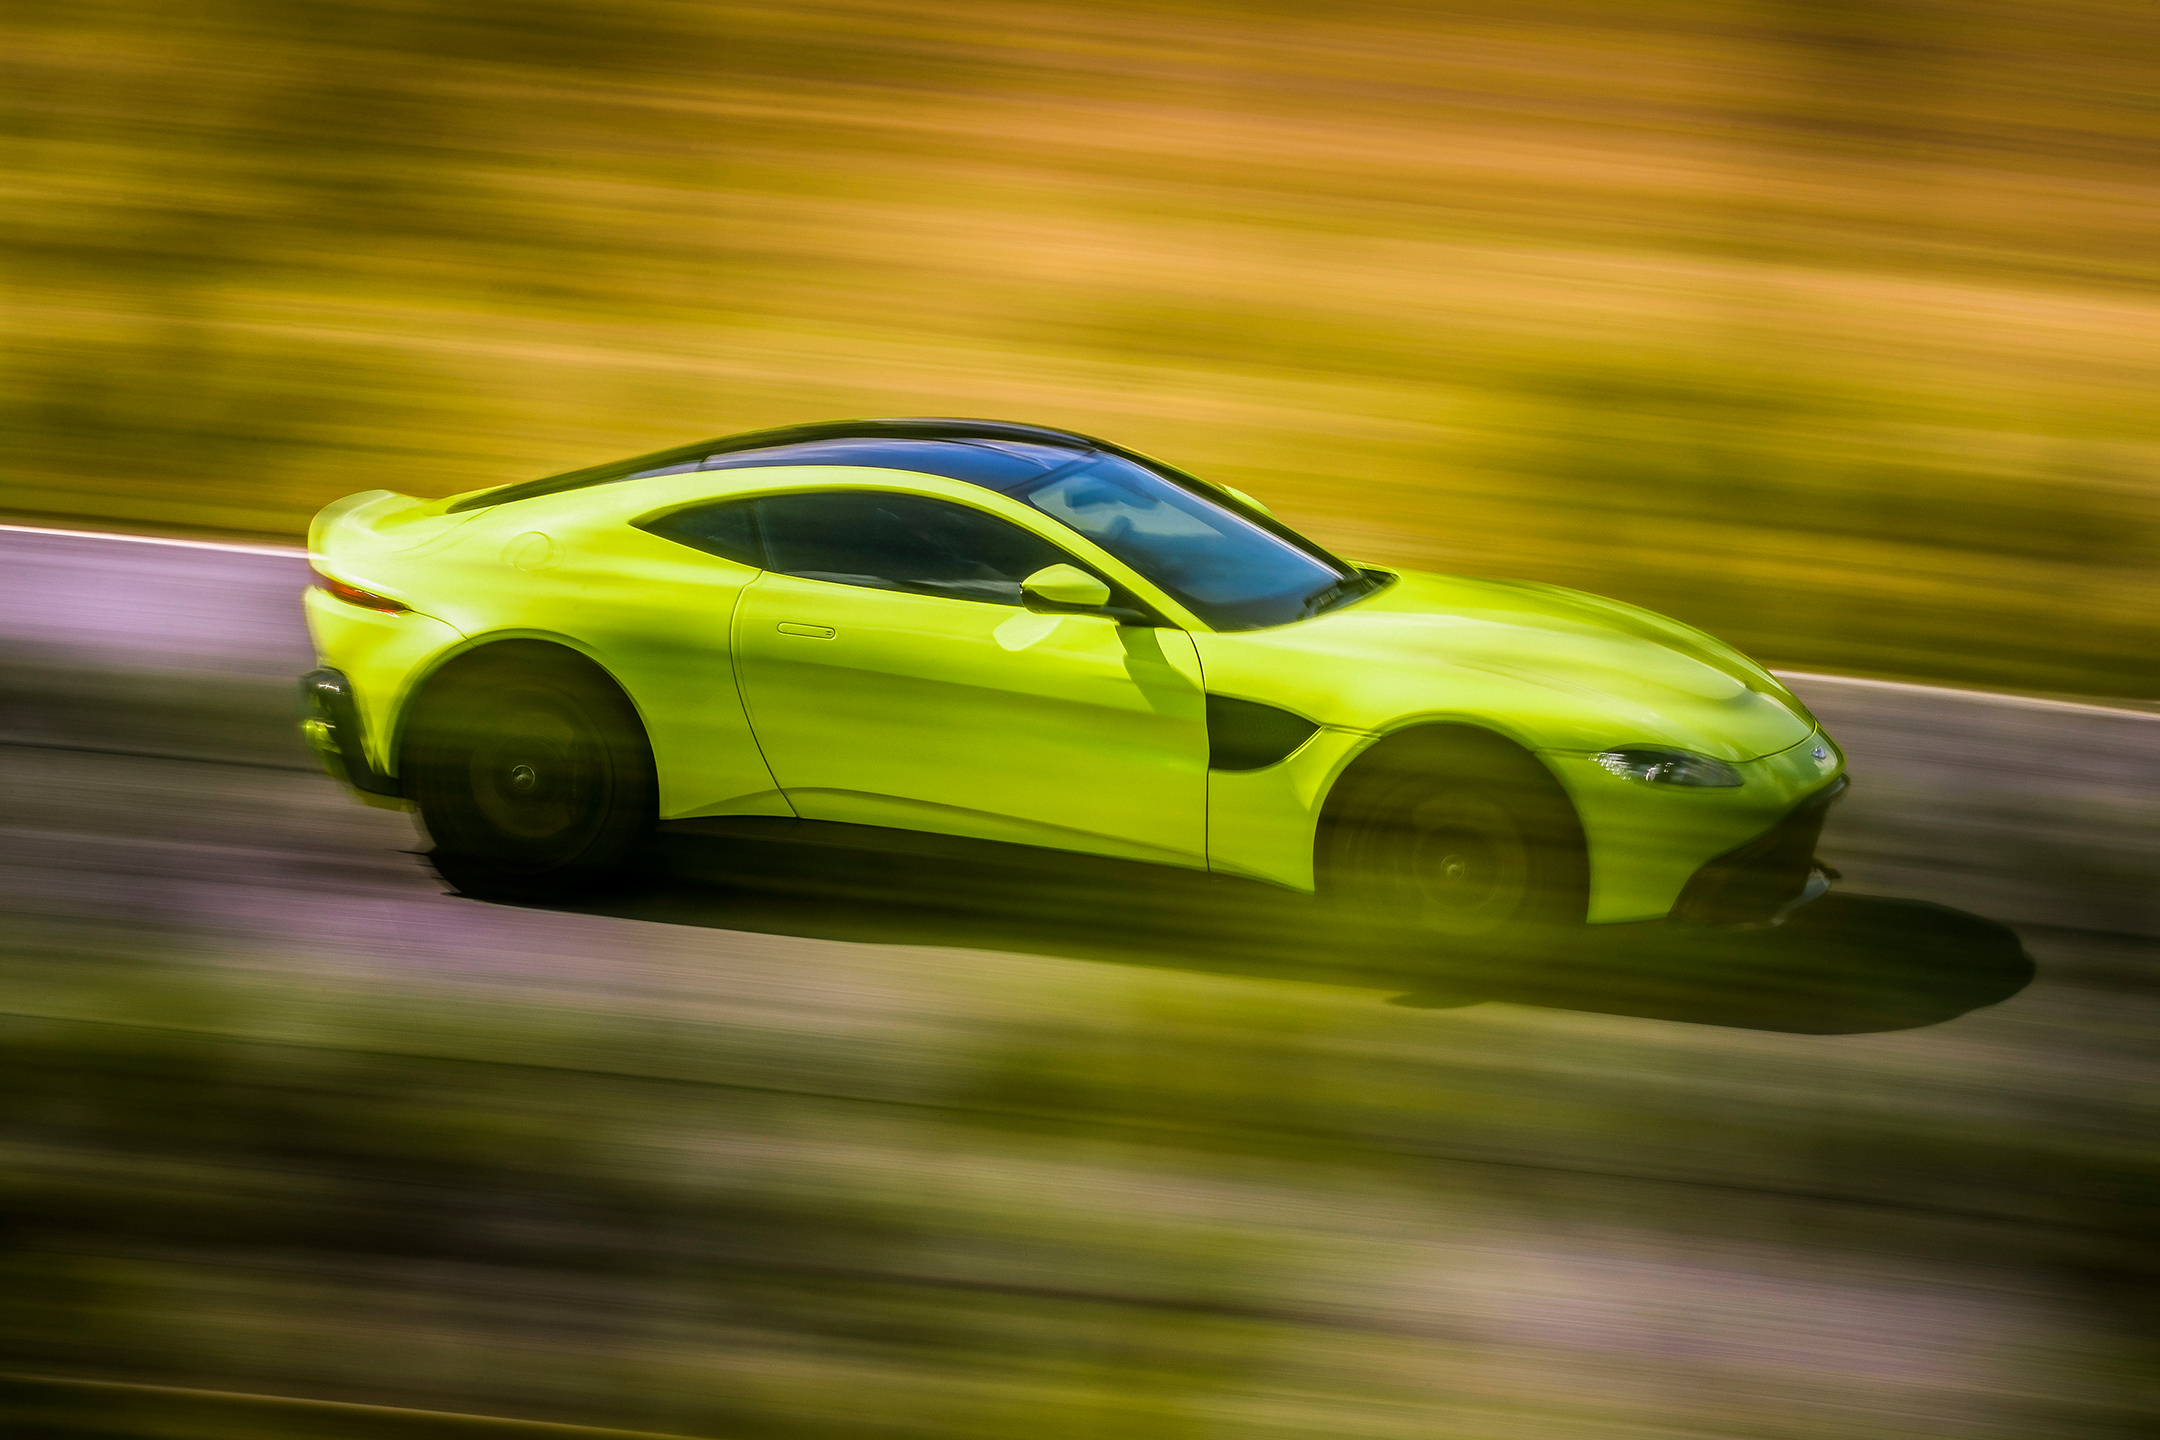 Aston Martin Vantage - 2018 Side-face Speed Lime Essence Livery